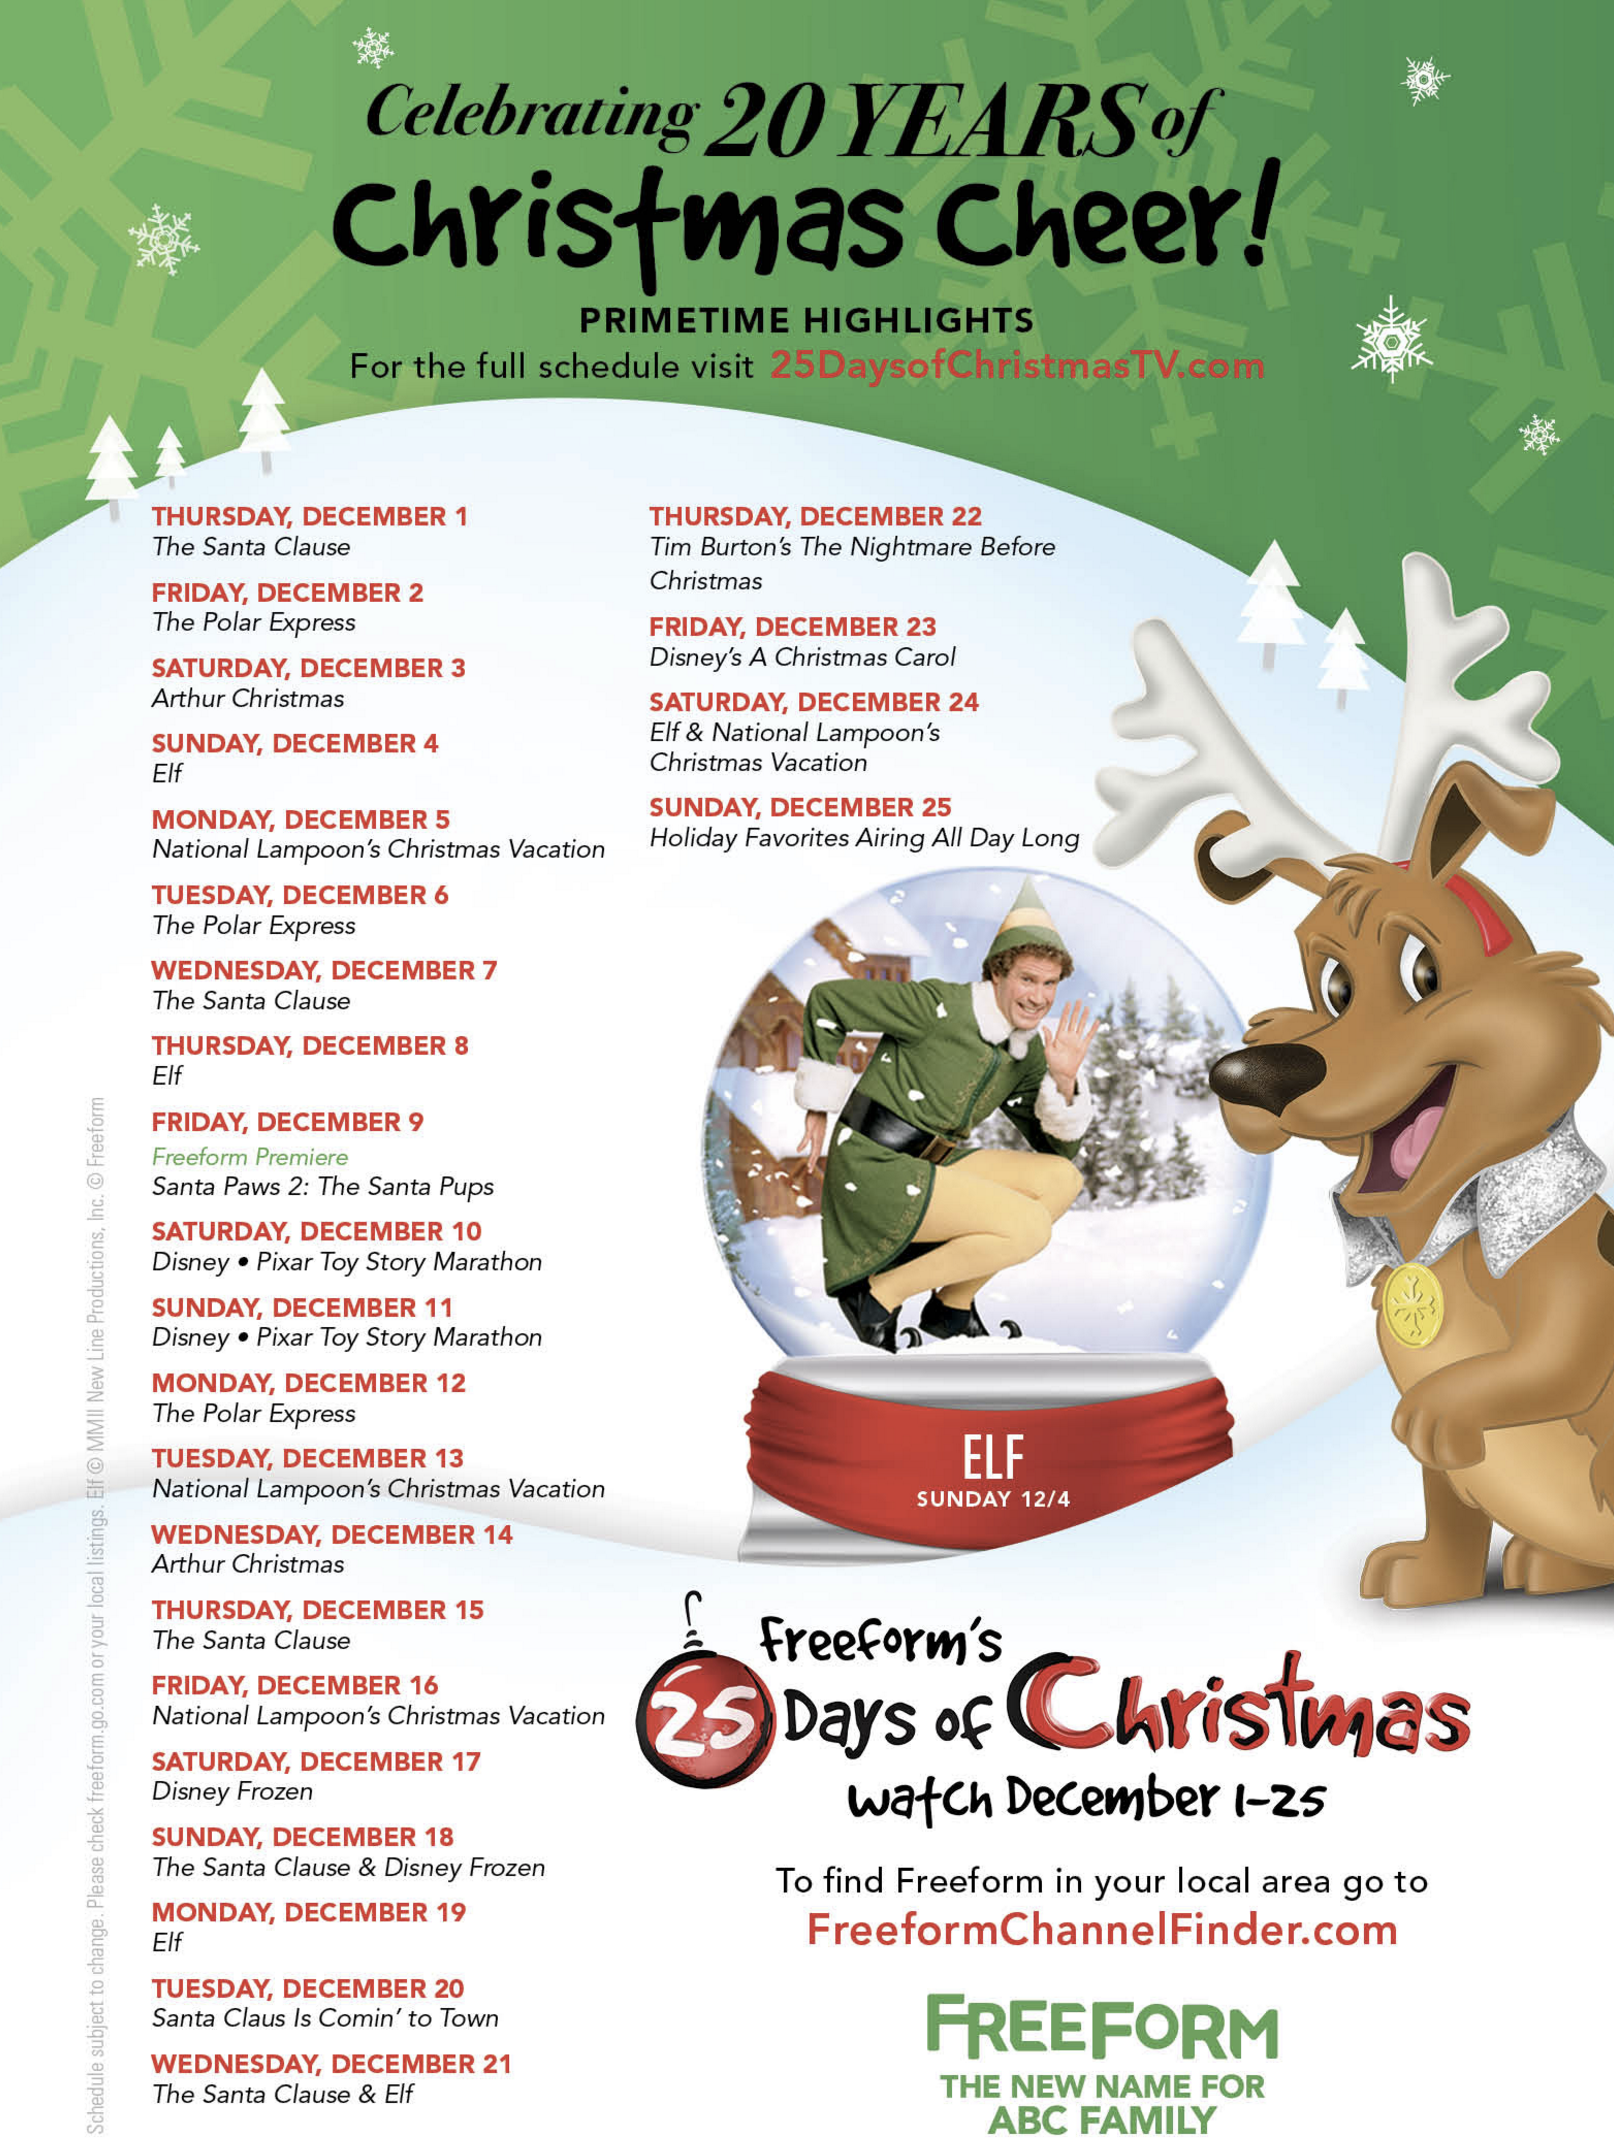 abc days christmas freeform movies schedule tv december nights channel dec santa years above larger without children